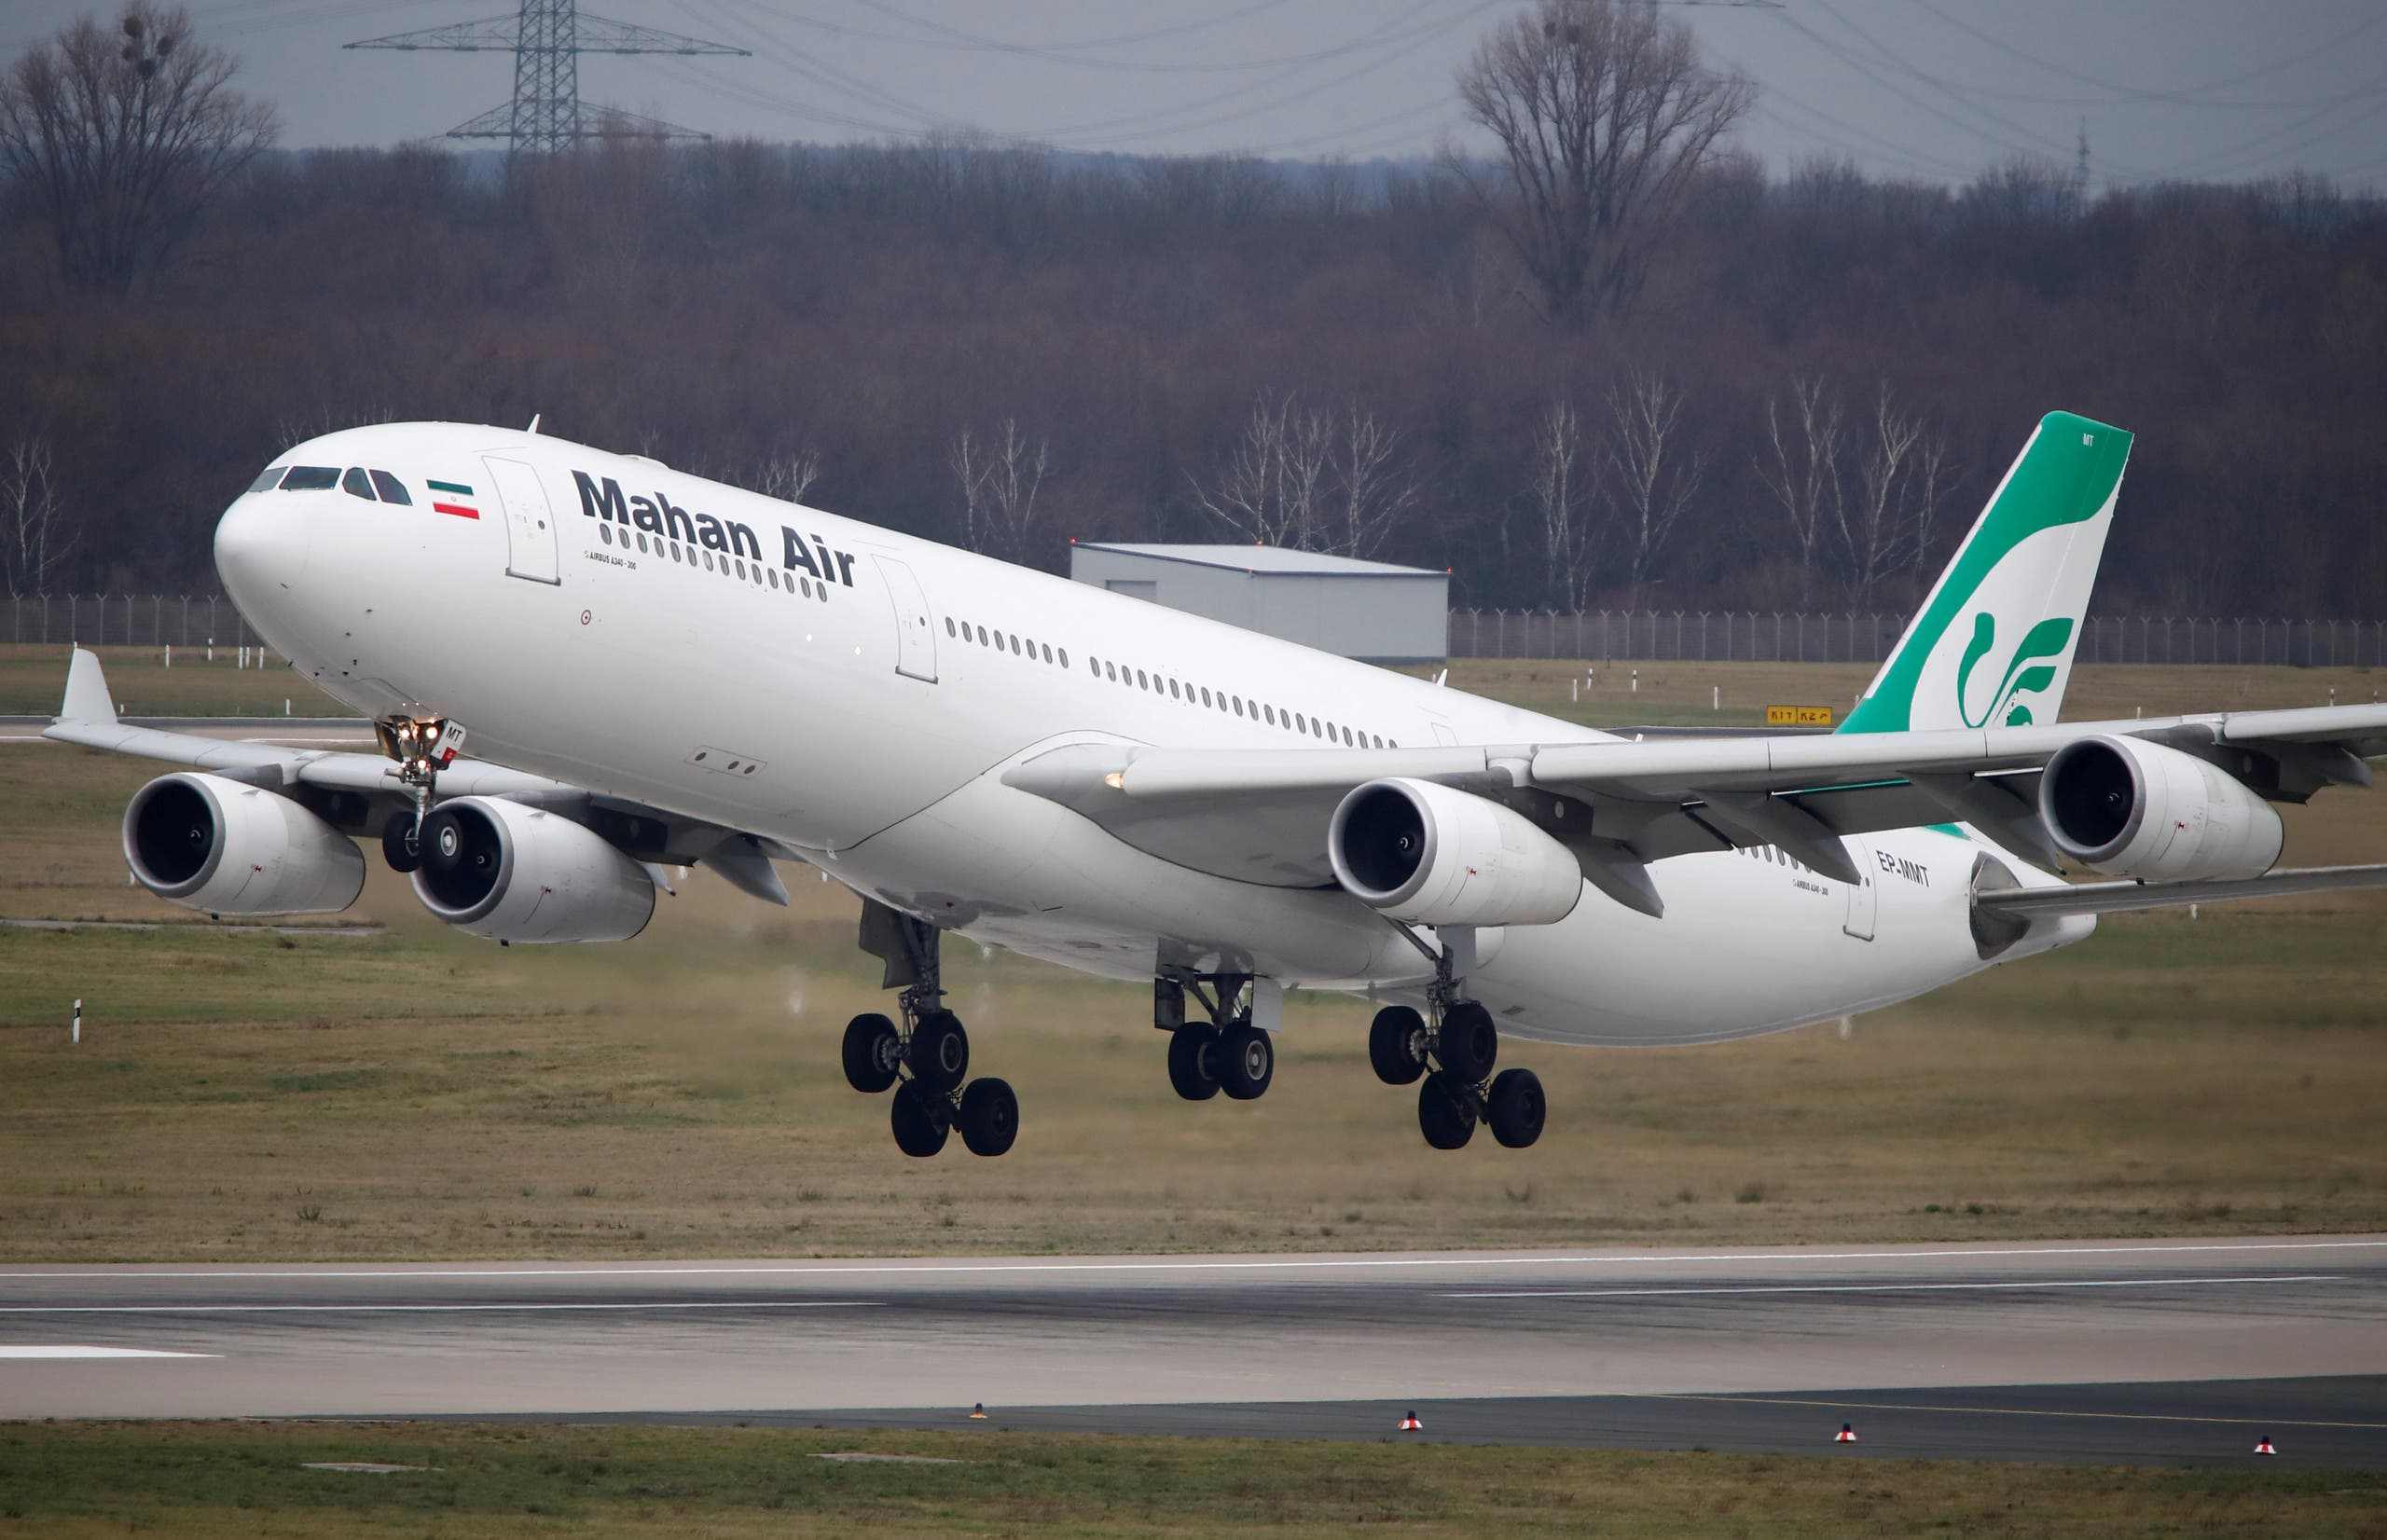 An Airbus A340-300 of Iranian airline Mahan Air takes off from Duesseldorf airport DUS, Germany January 16, 2019. Picture taken January 16, 2019. (File photo: Reuters)